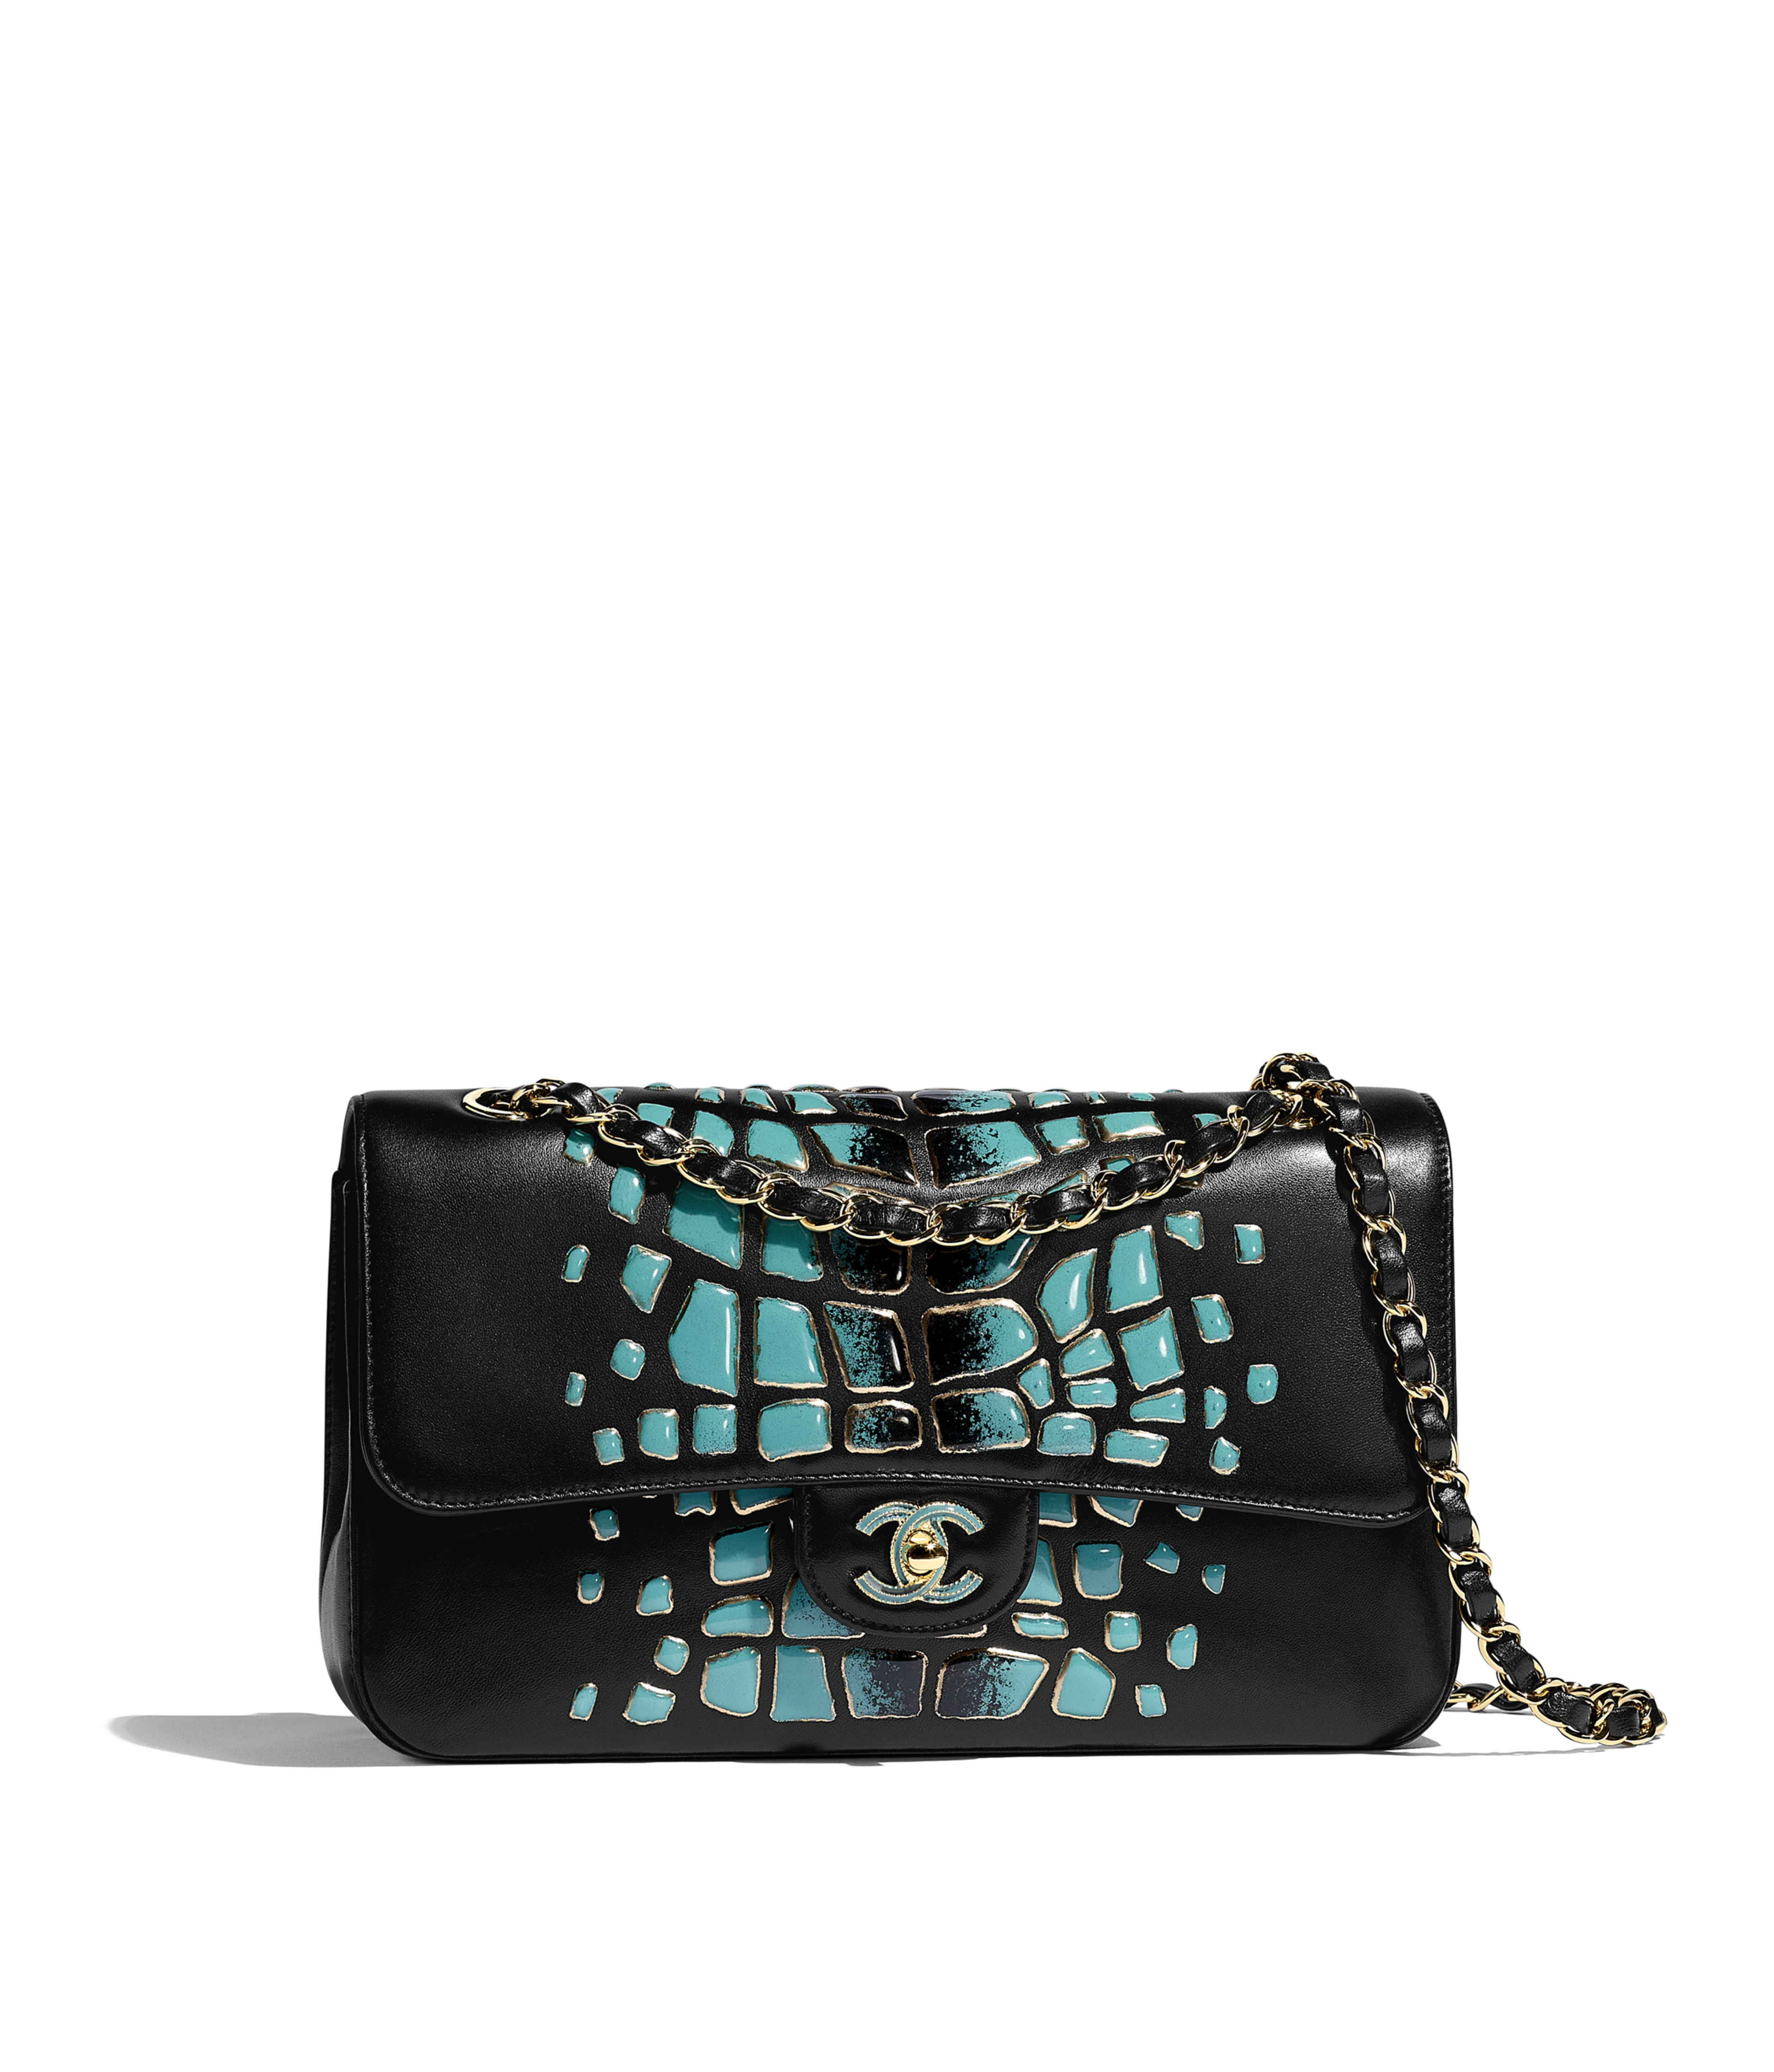 62fc9bfd06323e Classic Handbag Lambskin, Resin & Gold-Tone Metal, Turquoise & Black Ref.  A01112B00744N4840